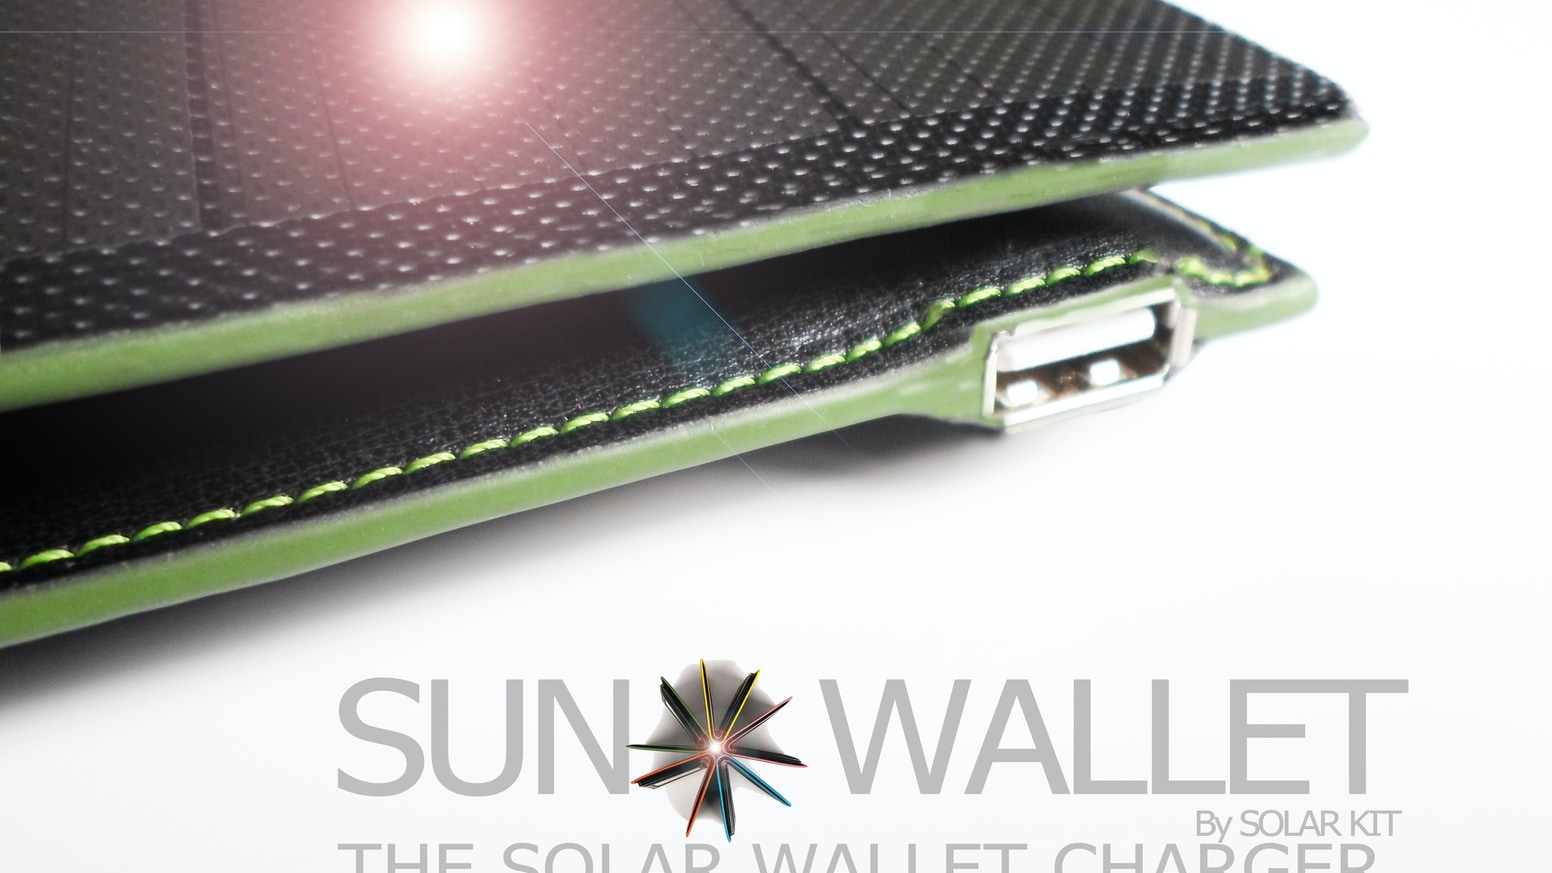 SUNO WALLET saves you when you run out of juice! If you routinely need to charge your cellphone this wallet is right up your alley!